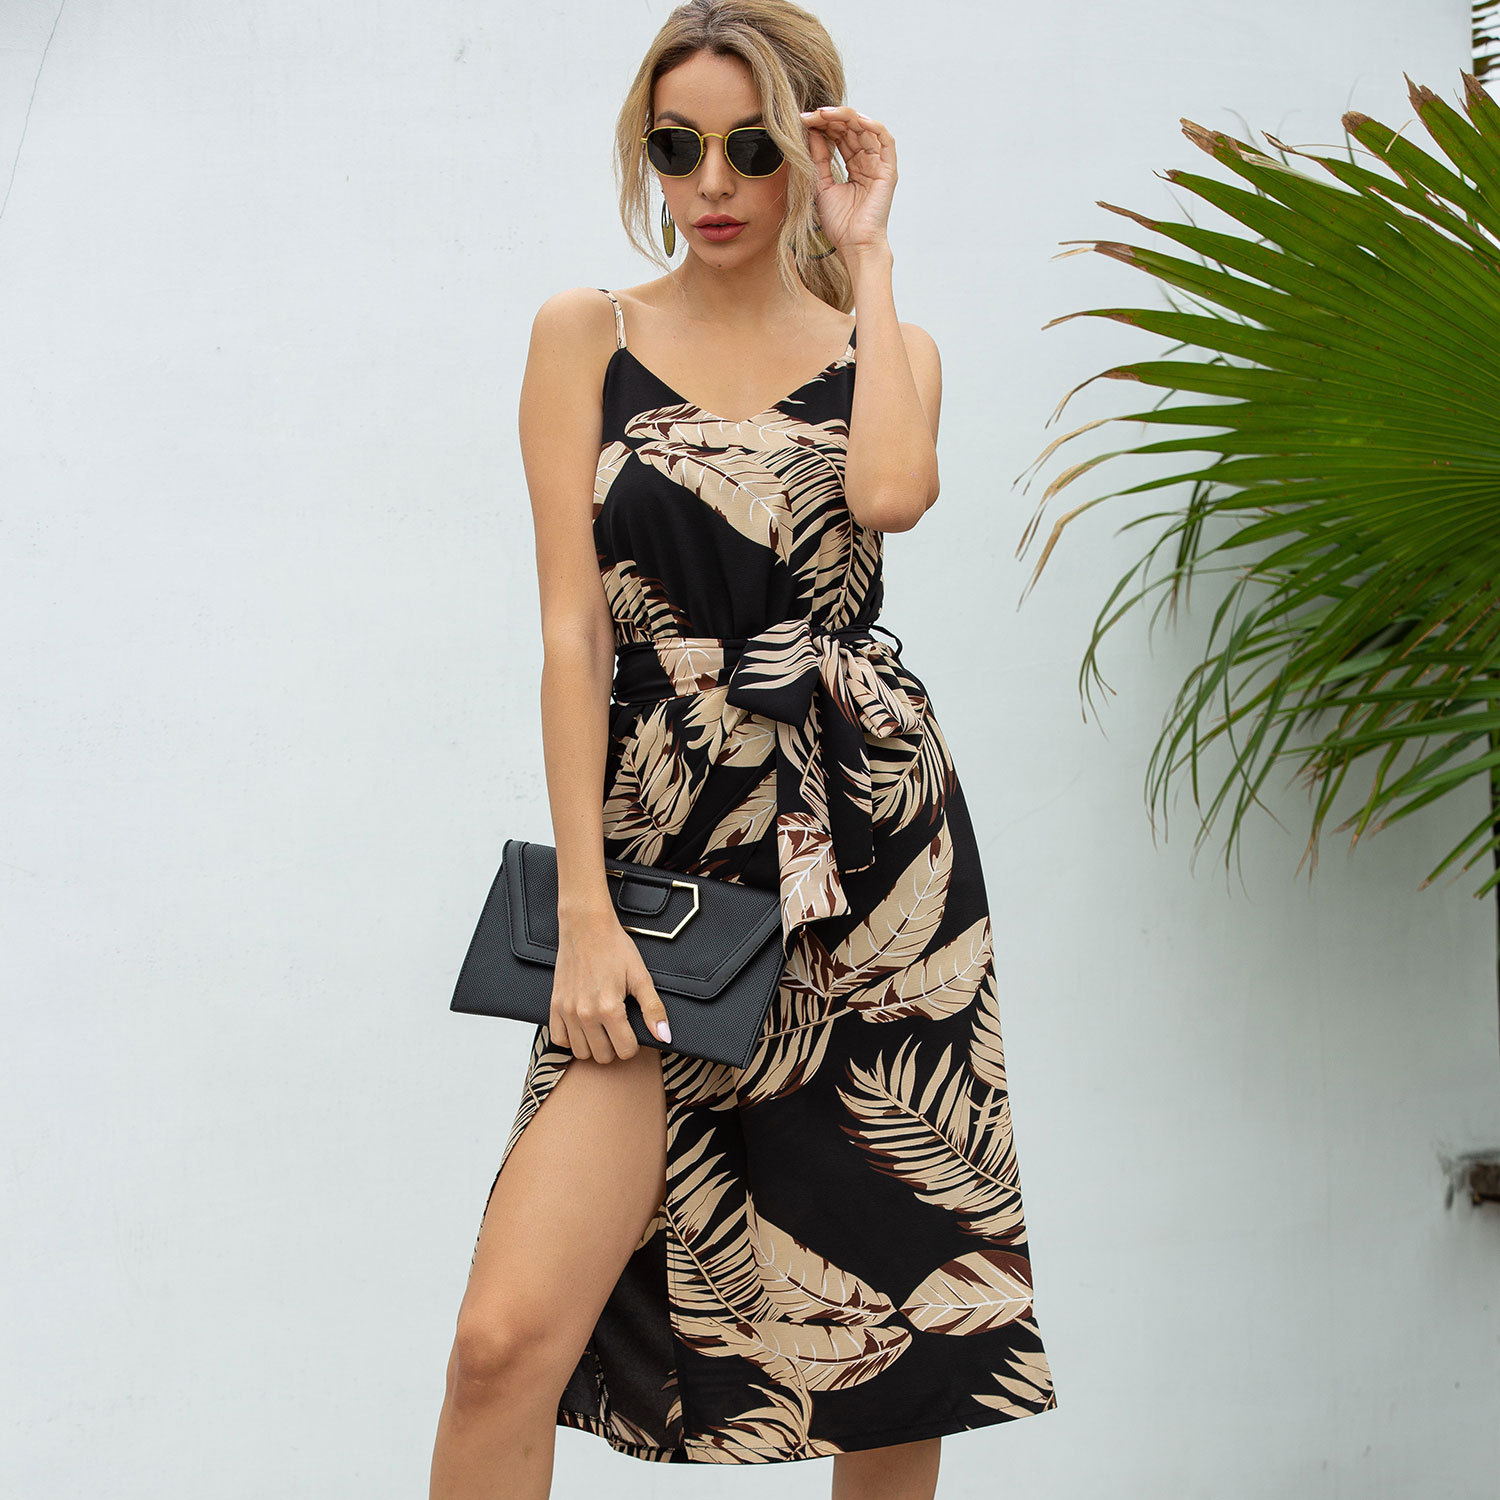 ZOGAA 2020 Europe and The <font><b>United</b></font> <font><b>States</b></font> <font><b>AliExpress</b></font> Spring and Summer Burst Four-color Printing Sling Loose Casual Dress image